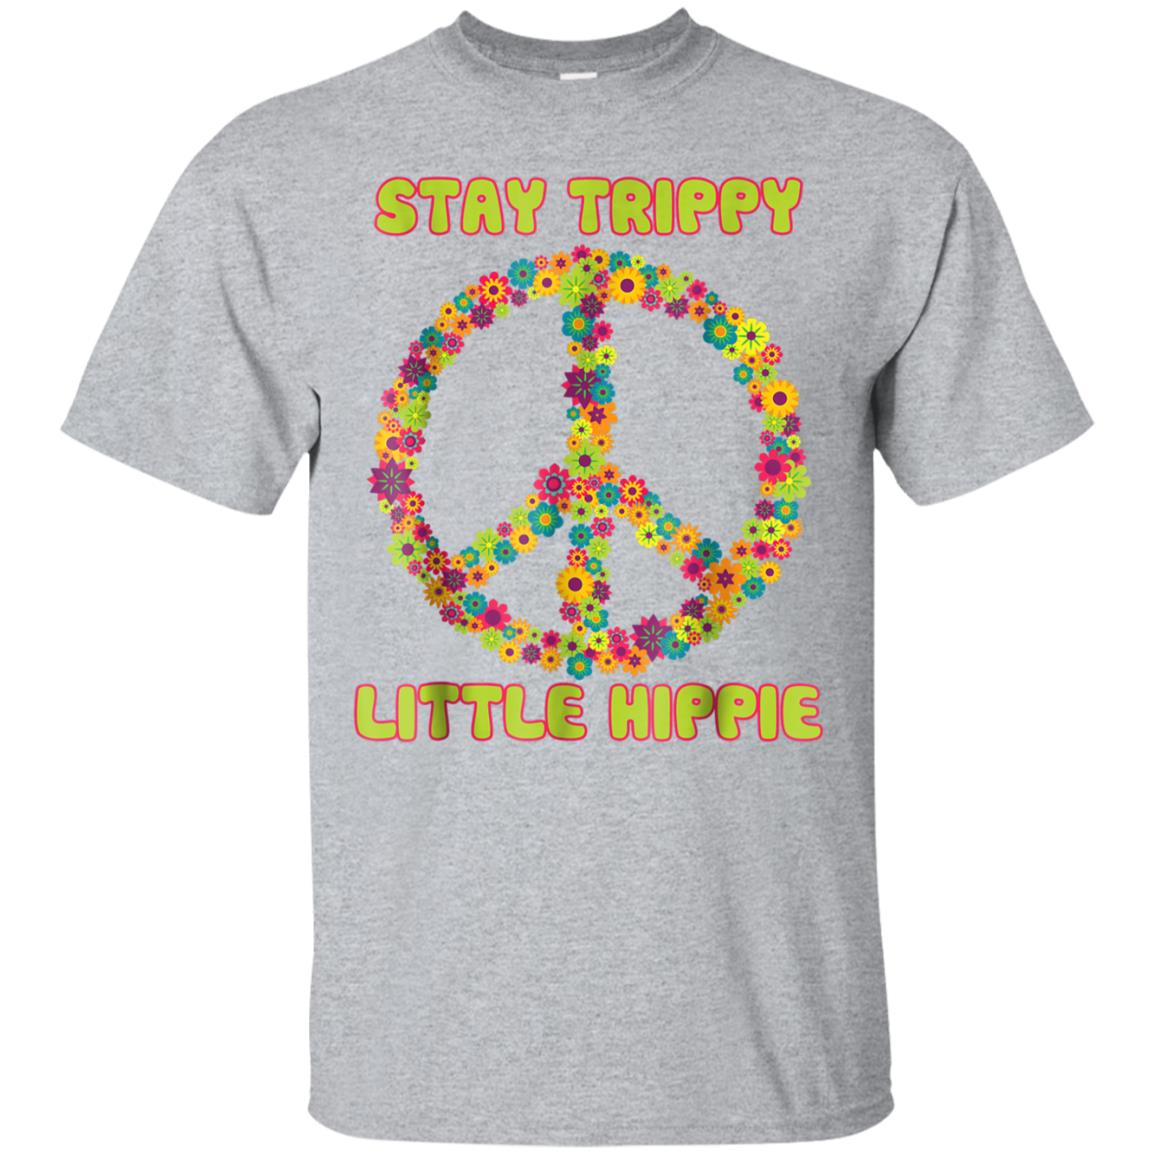 Stay trippy little hippie shirt 99promocode